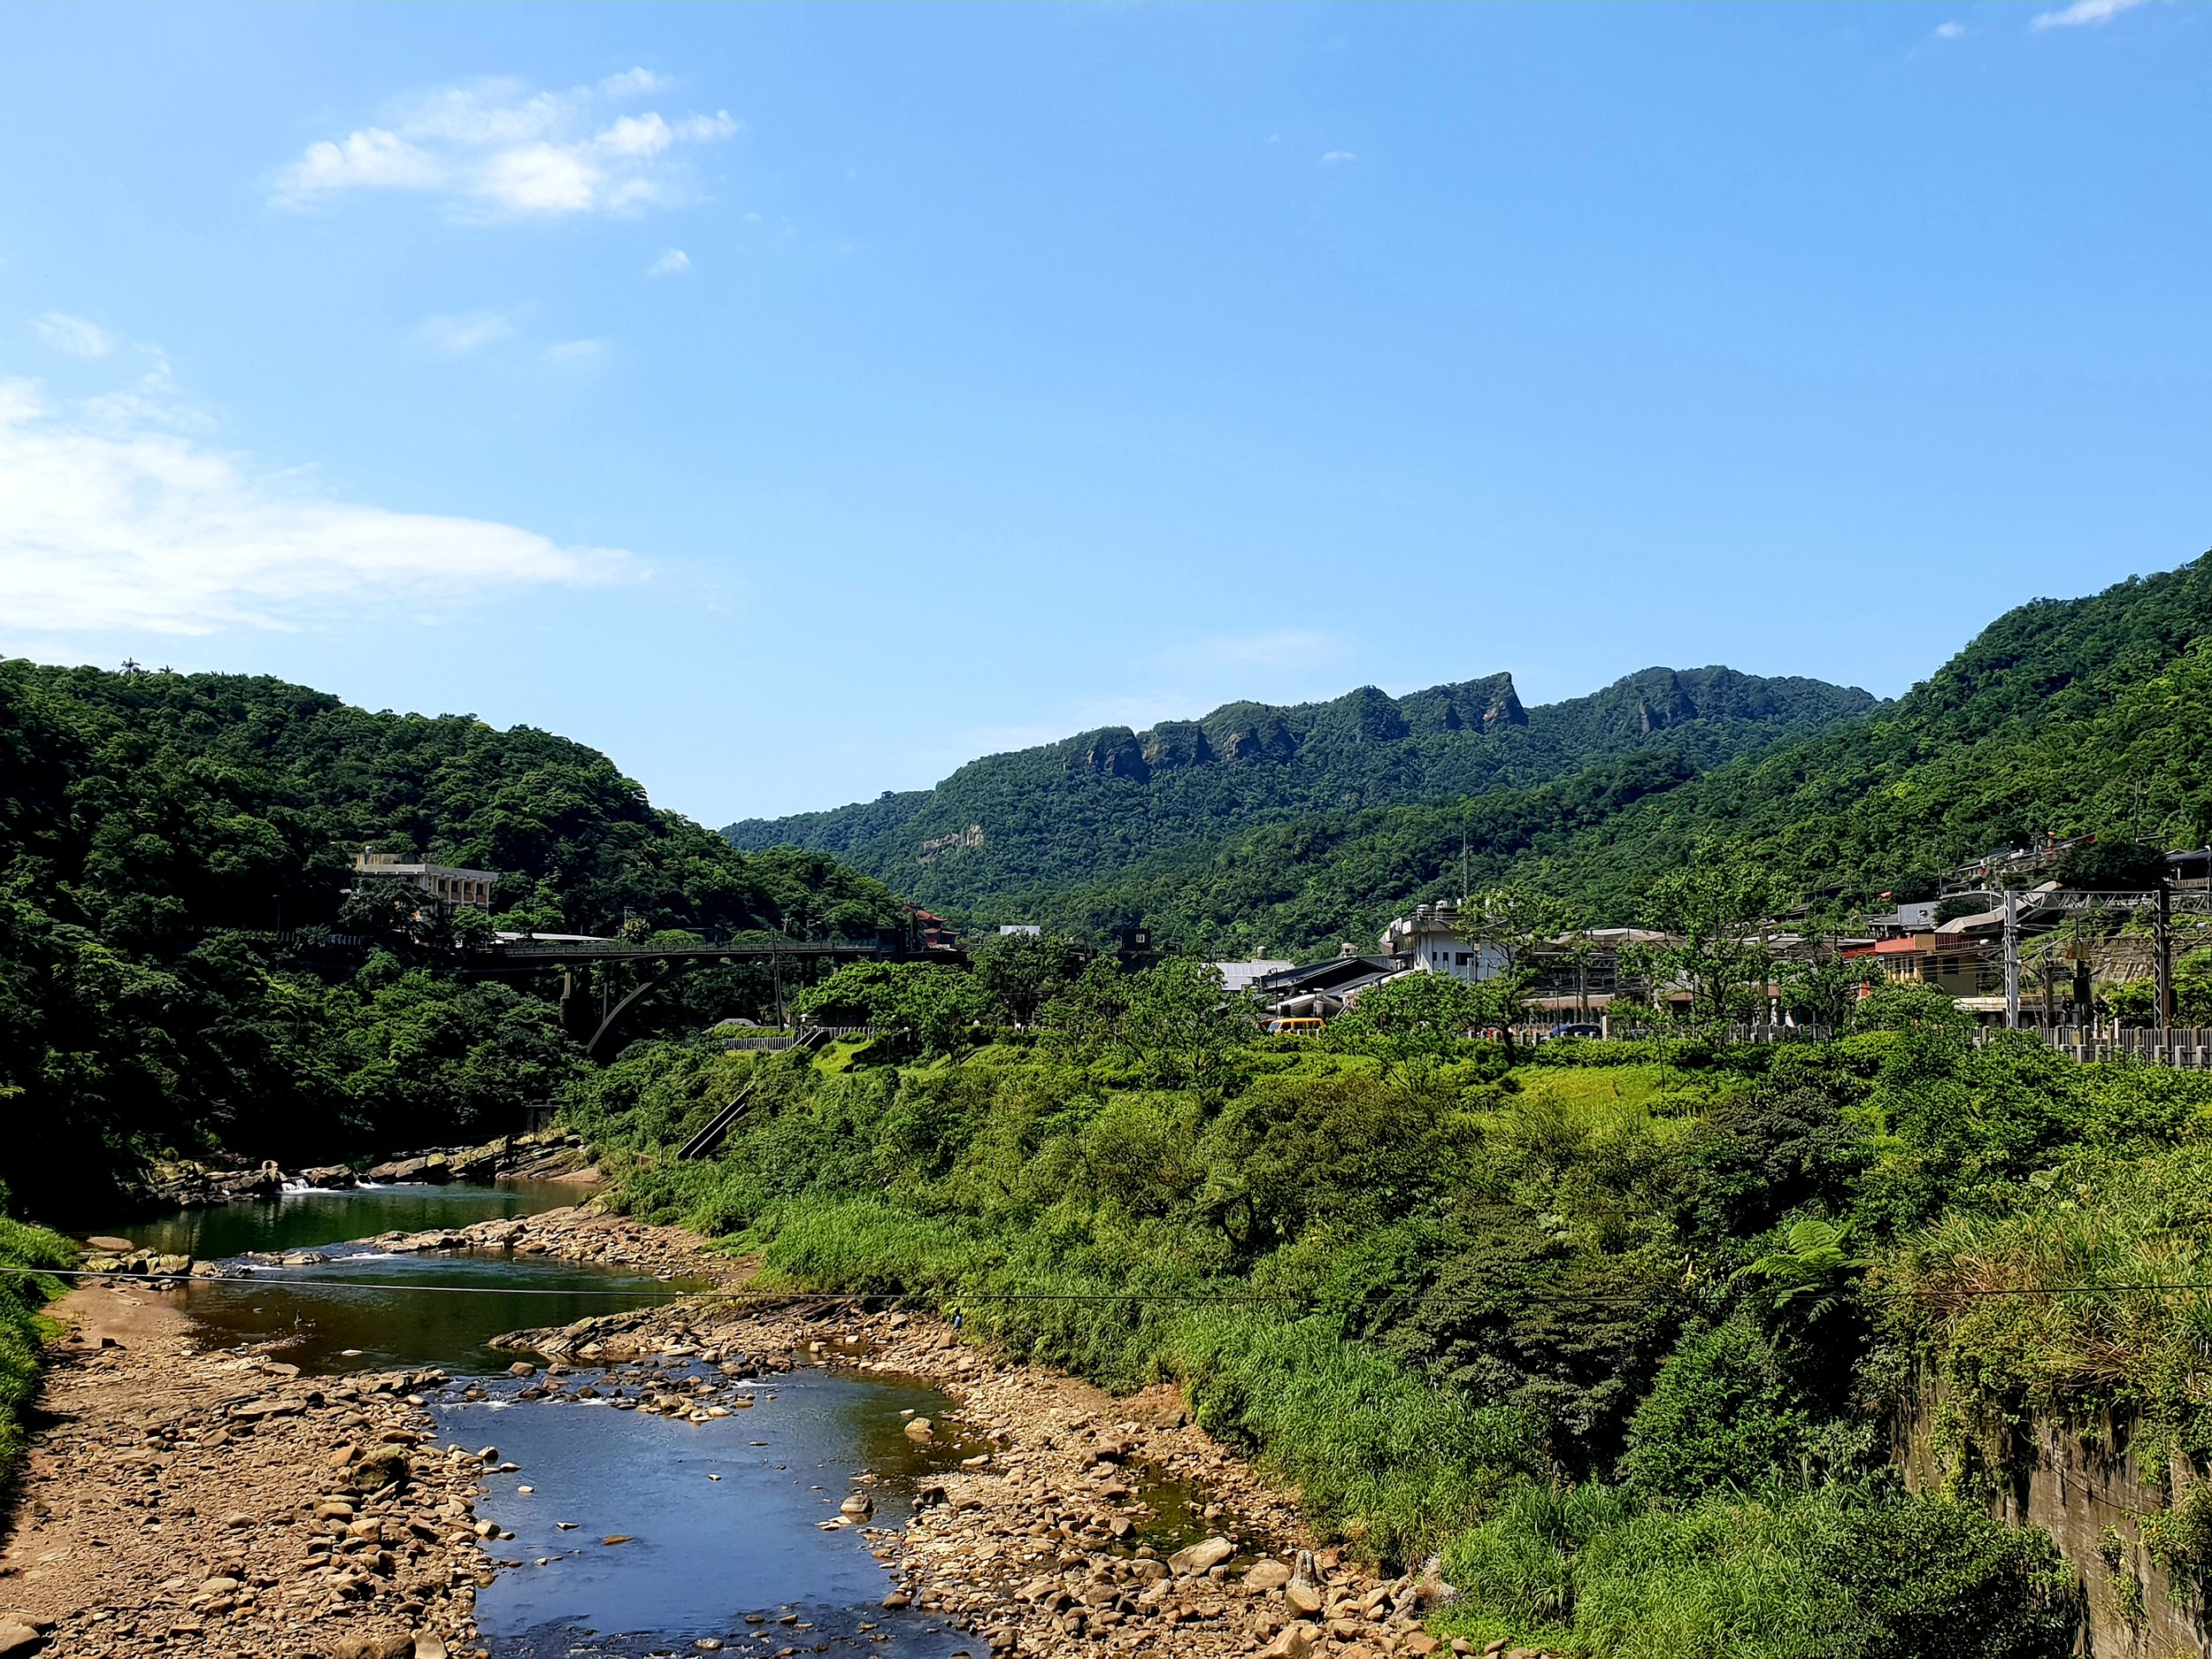 The beautiful valley Houtong sits in